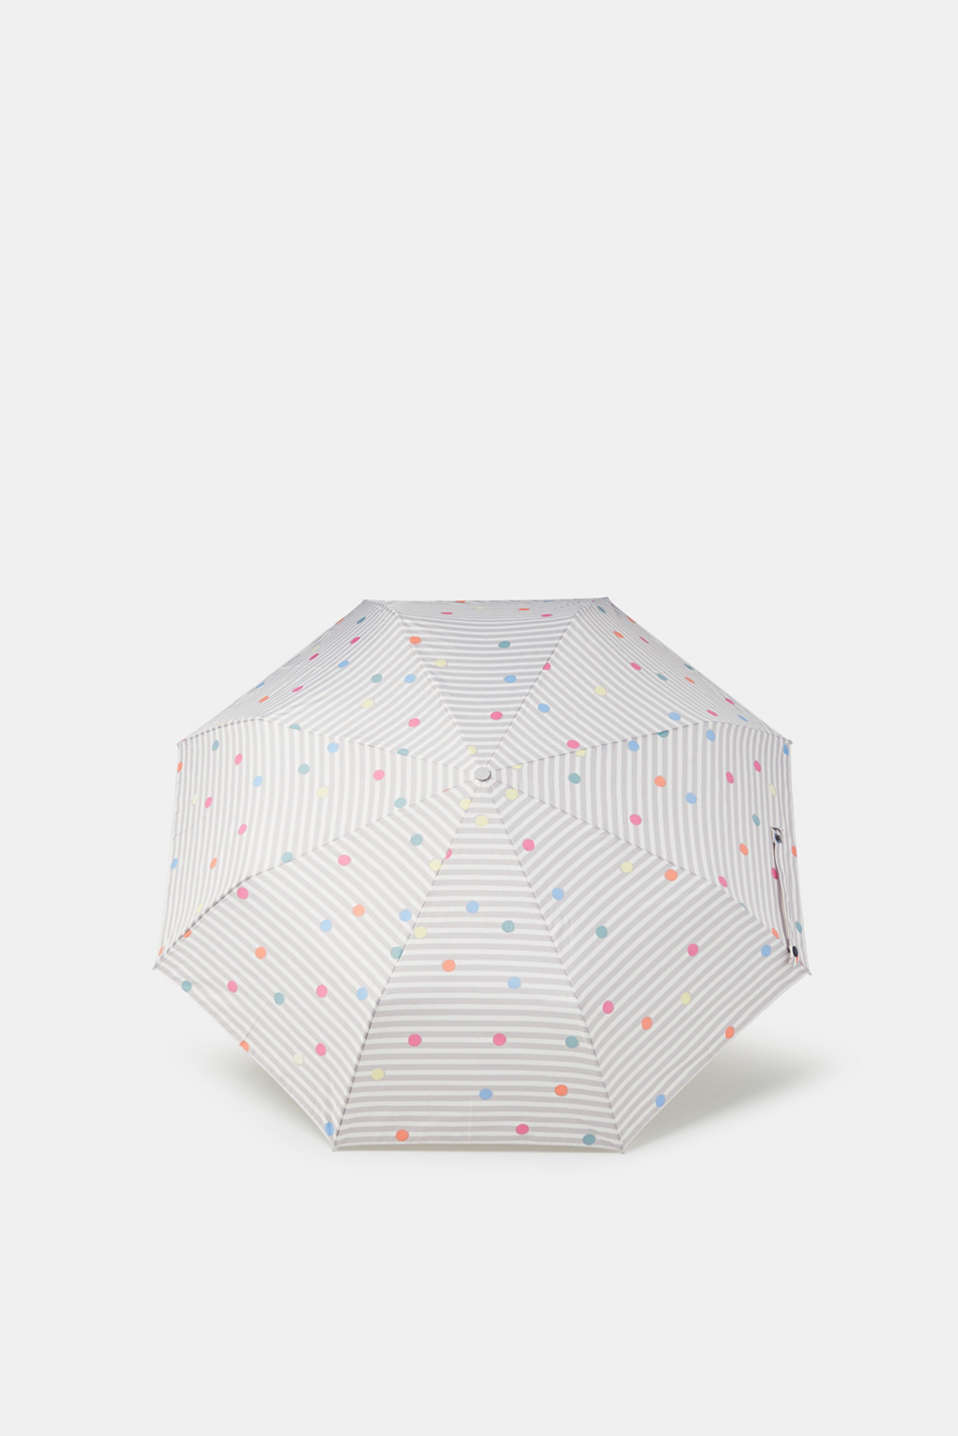 Esprit - Umbrella with a mix of patterns, in a handbag-sized design